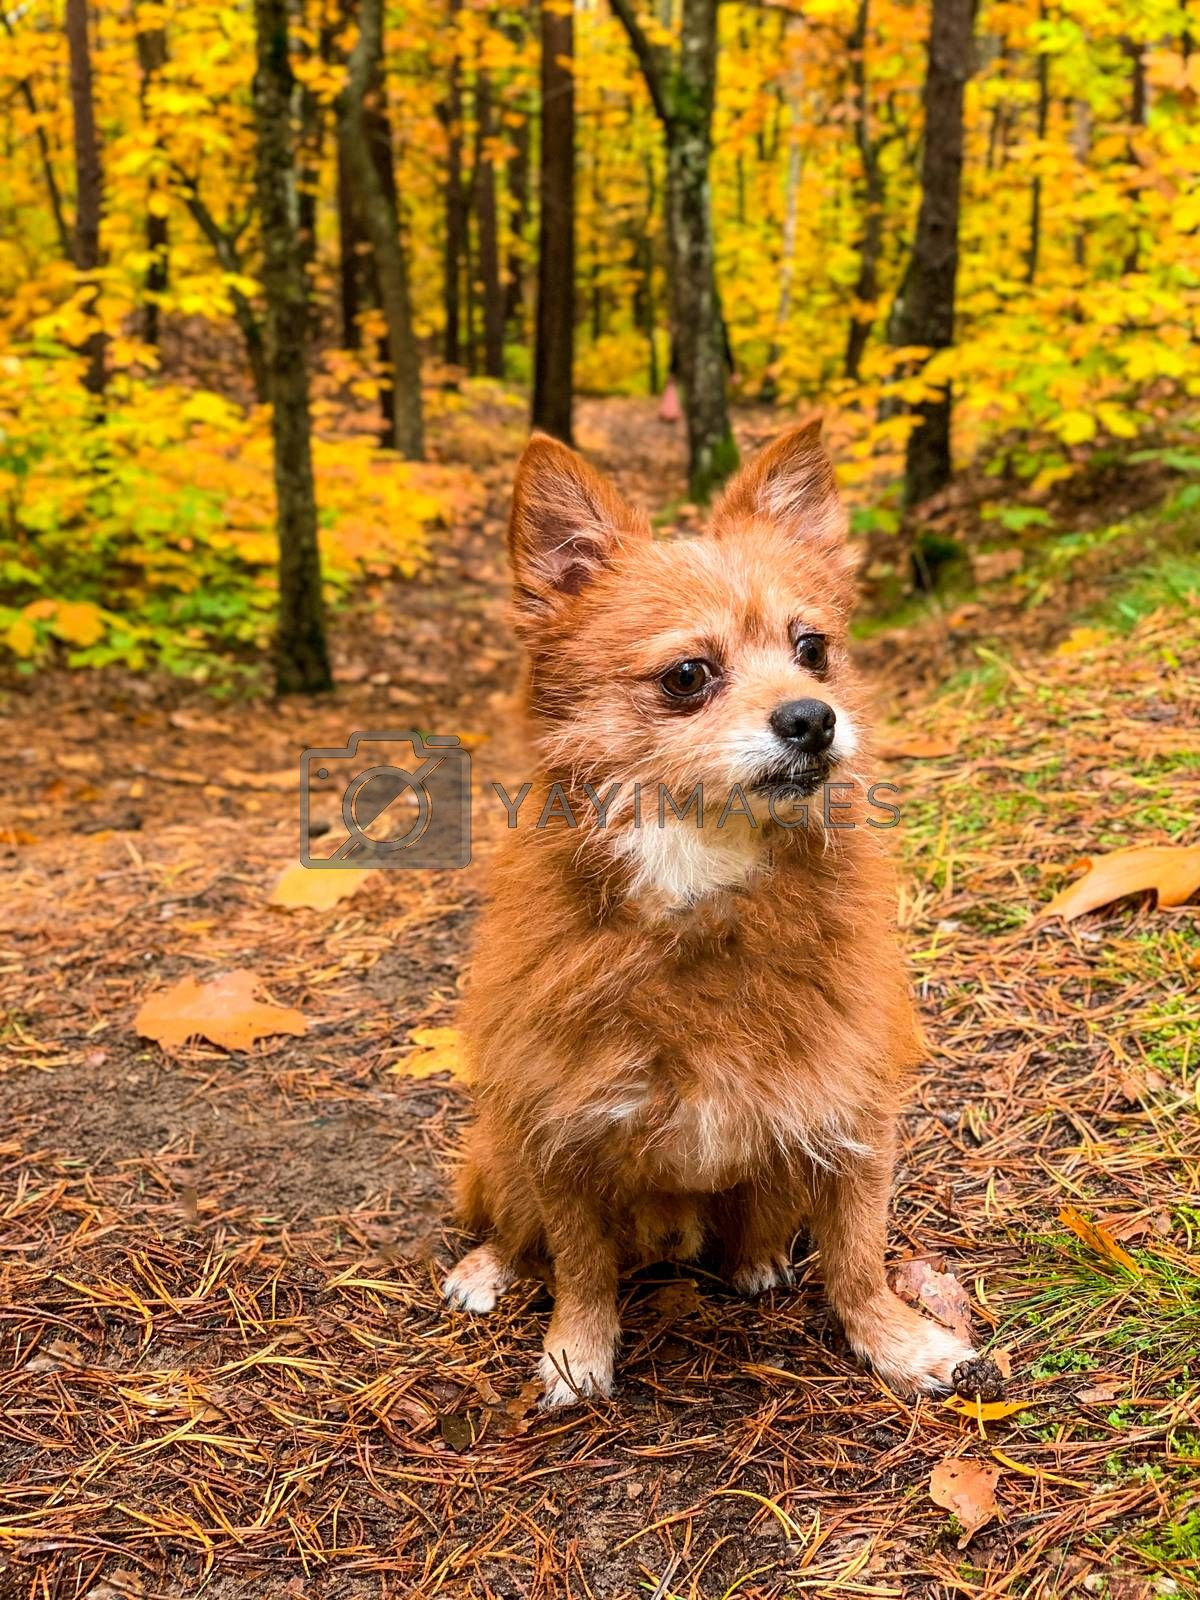 red dog, like a fox sitting on the yellow fallen leaves. On a blurred background of autumn trees with yellow leaves.